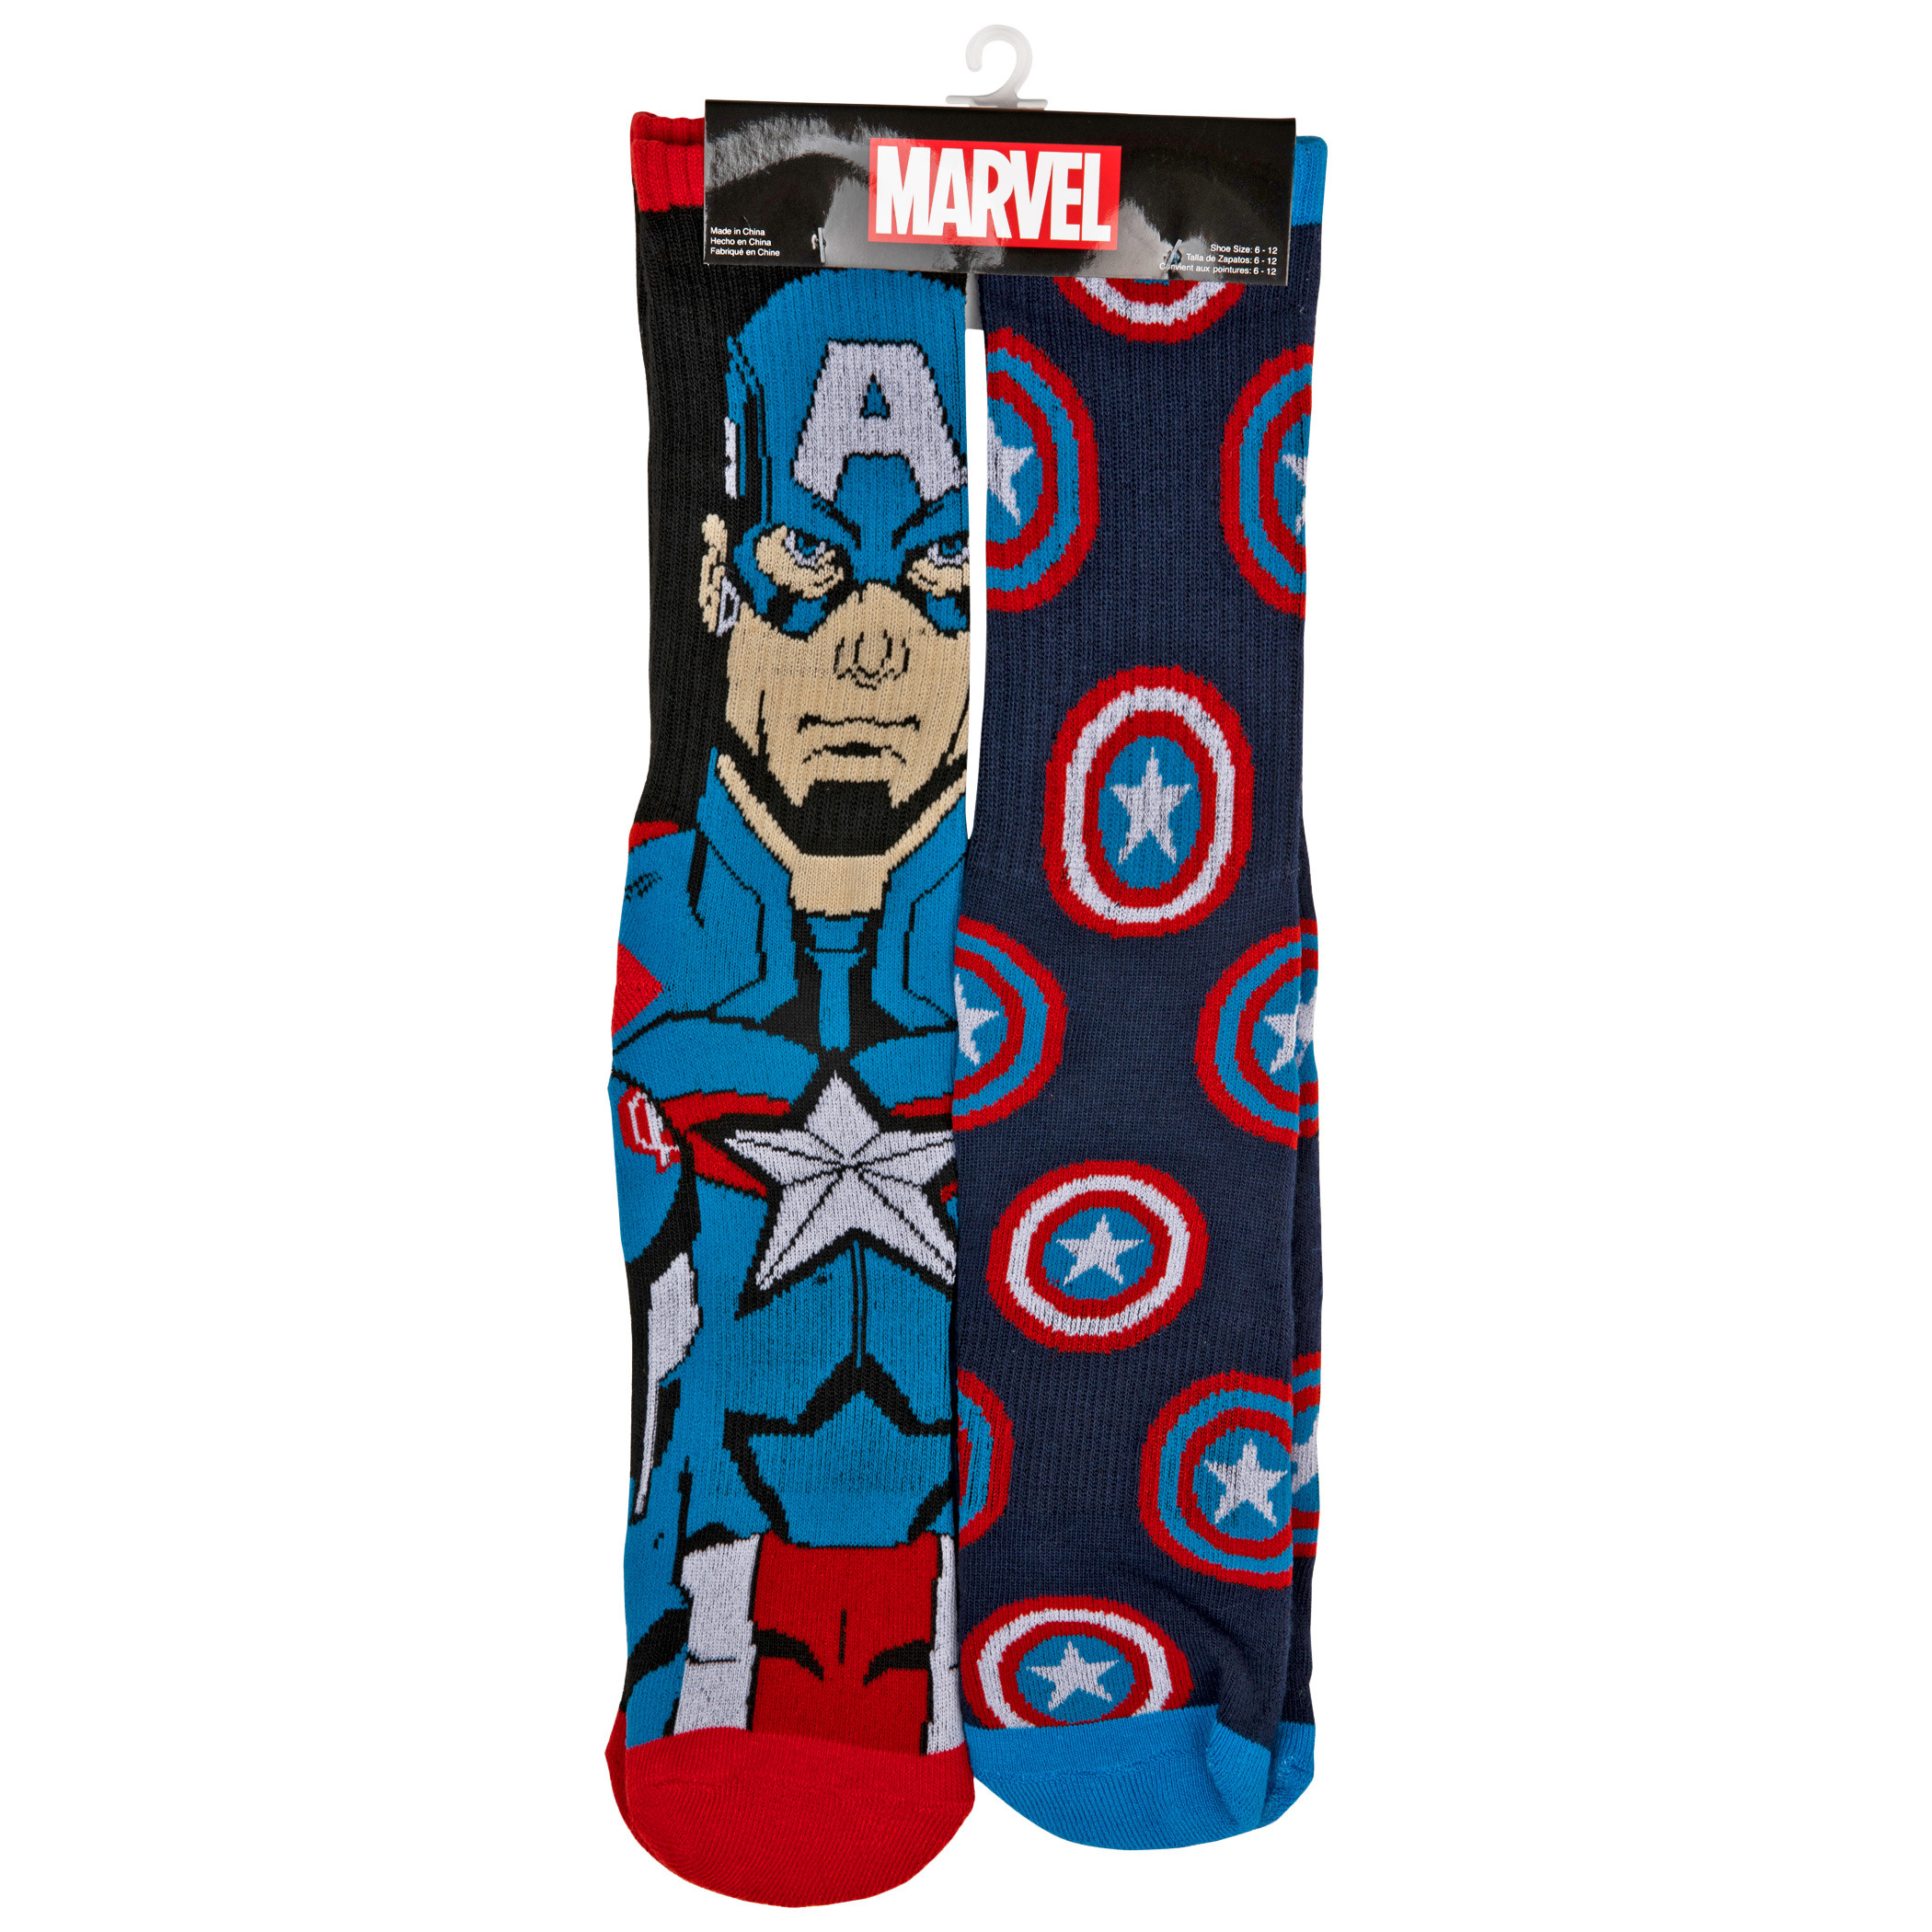 Captain America Character and Shield Symbols 2-Pair Pack of Athletic Socks